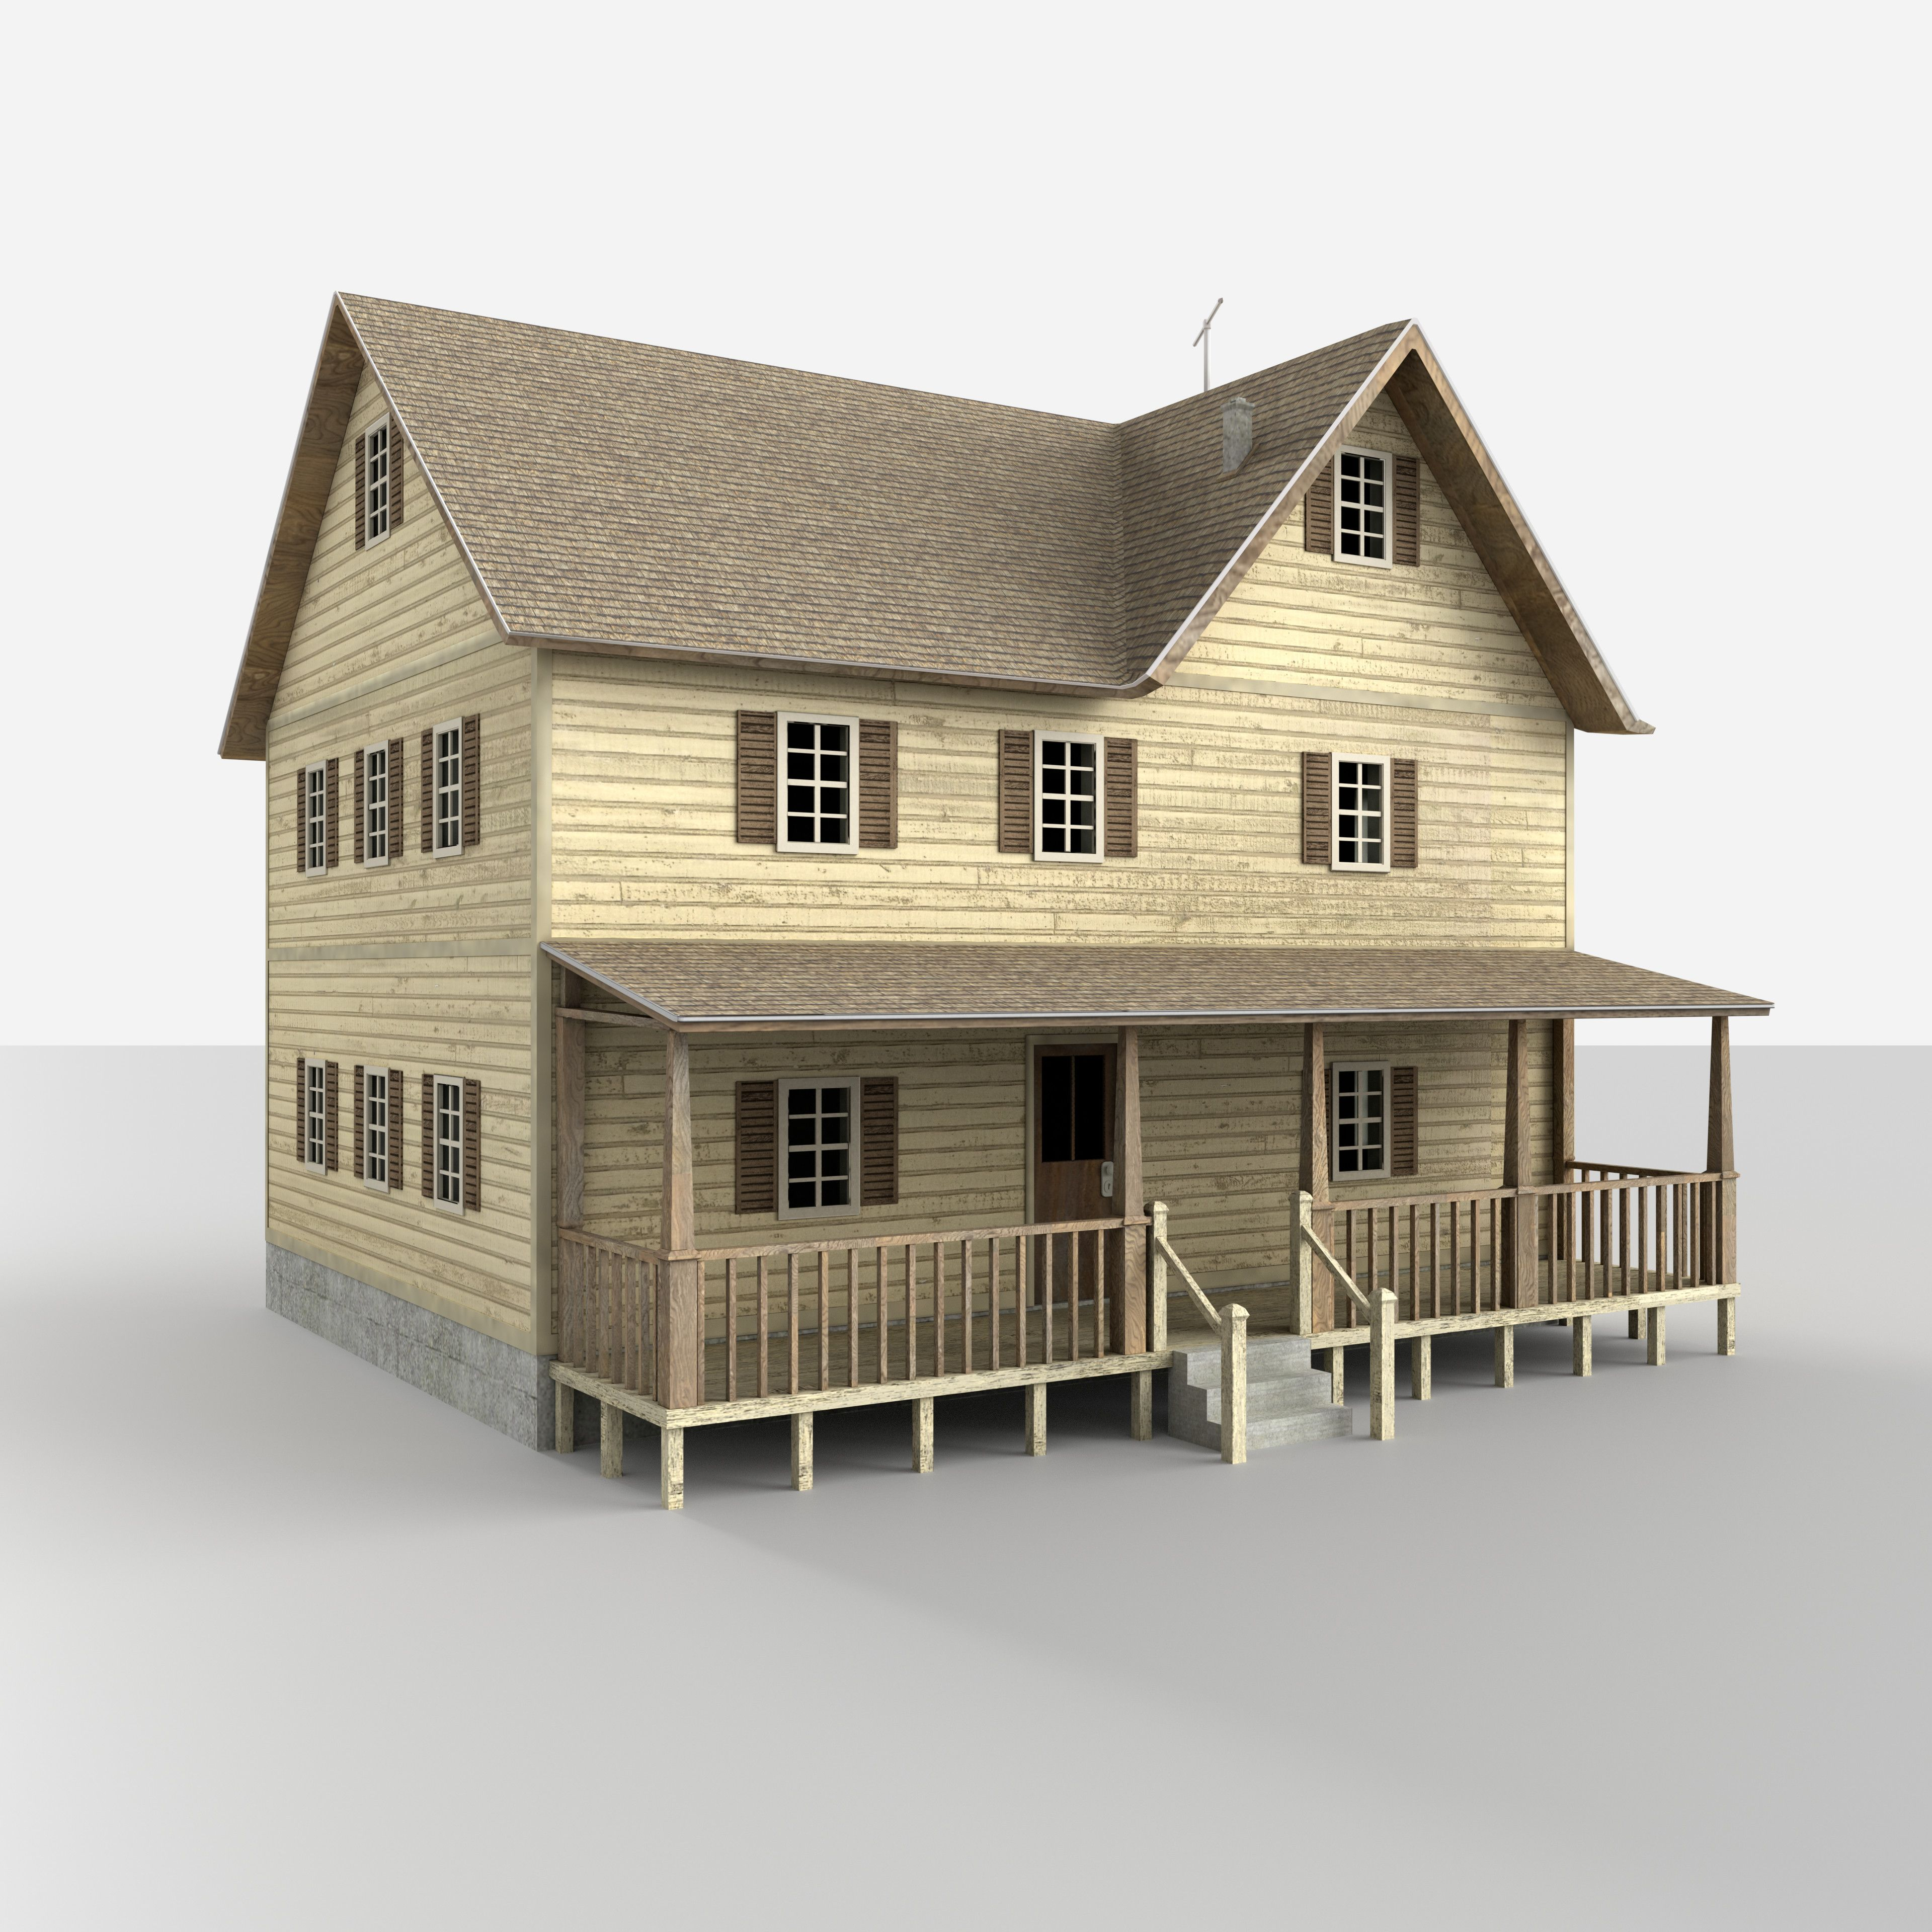 House · 3D Model Rural House Building ...